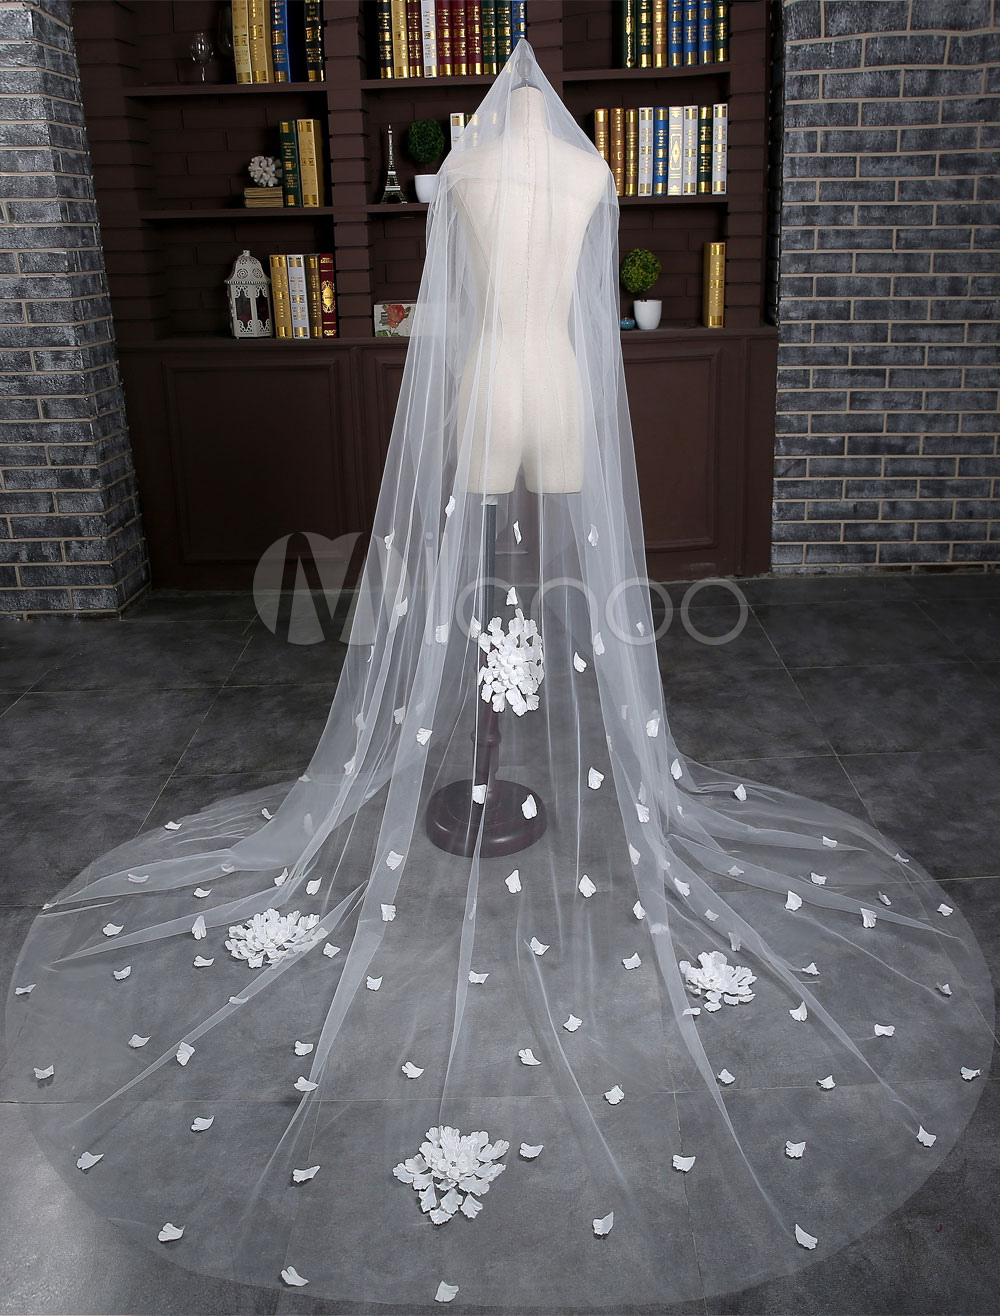 Buy Cathedral Wedding Veil Tulle 2-Tier Flowers Waterfall Cut Edge Long Bridal Veil With Comb for $31.49 in Milanoo store